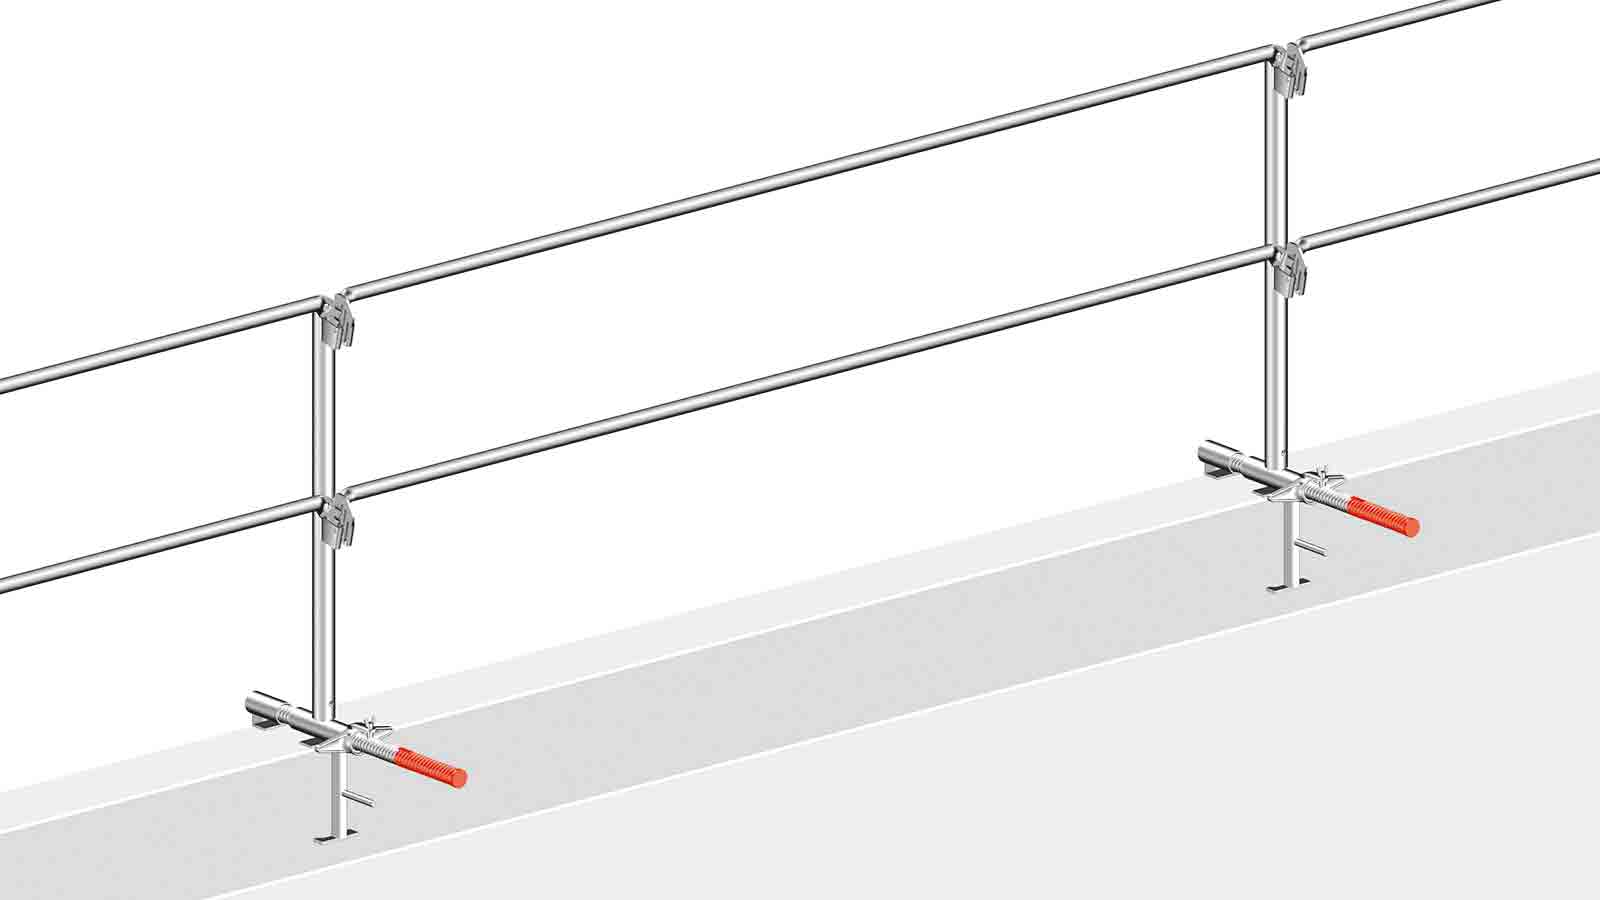 edge-protection-clamps-alt